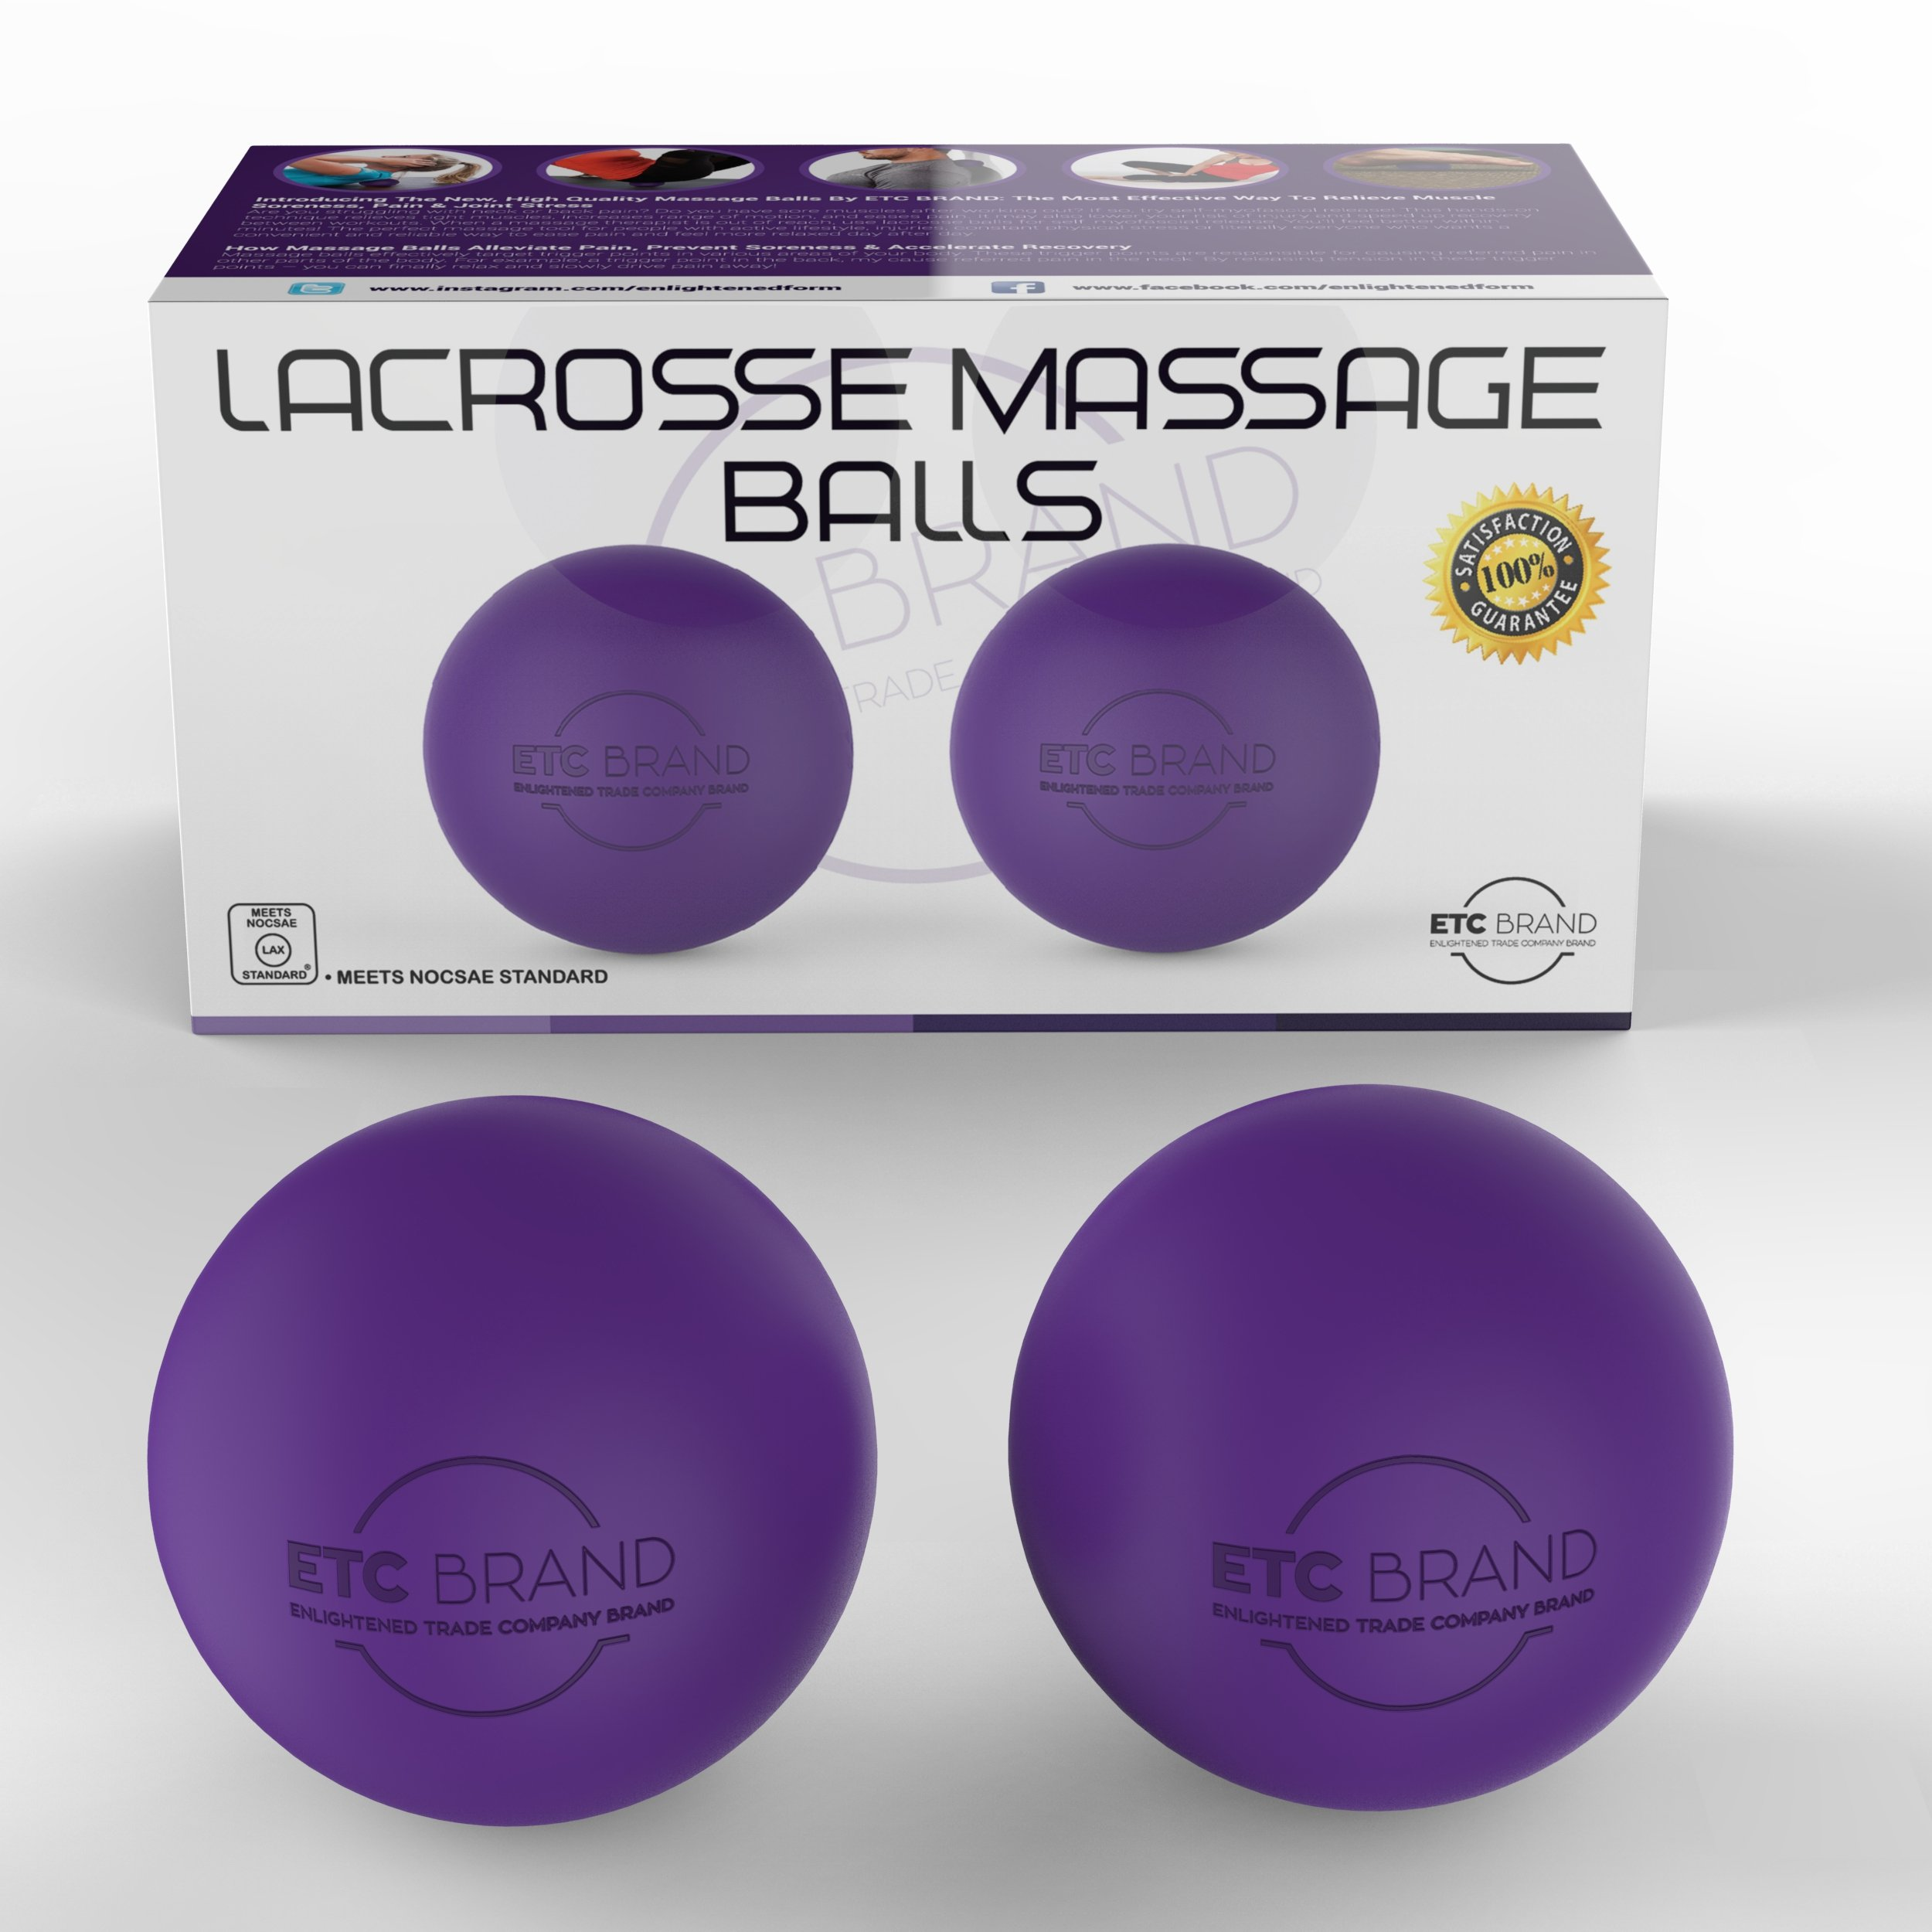 Lacrosse Massage Balls for Best Neck, Shoulders, Back, Foot Massage; Pain Relief, Trigger Point Release, Plantar fasciitis, Deep Tissue Therapy Yoga Roller Balls with Free Exercise Guide & Travel Bag